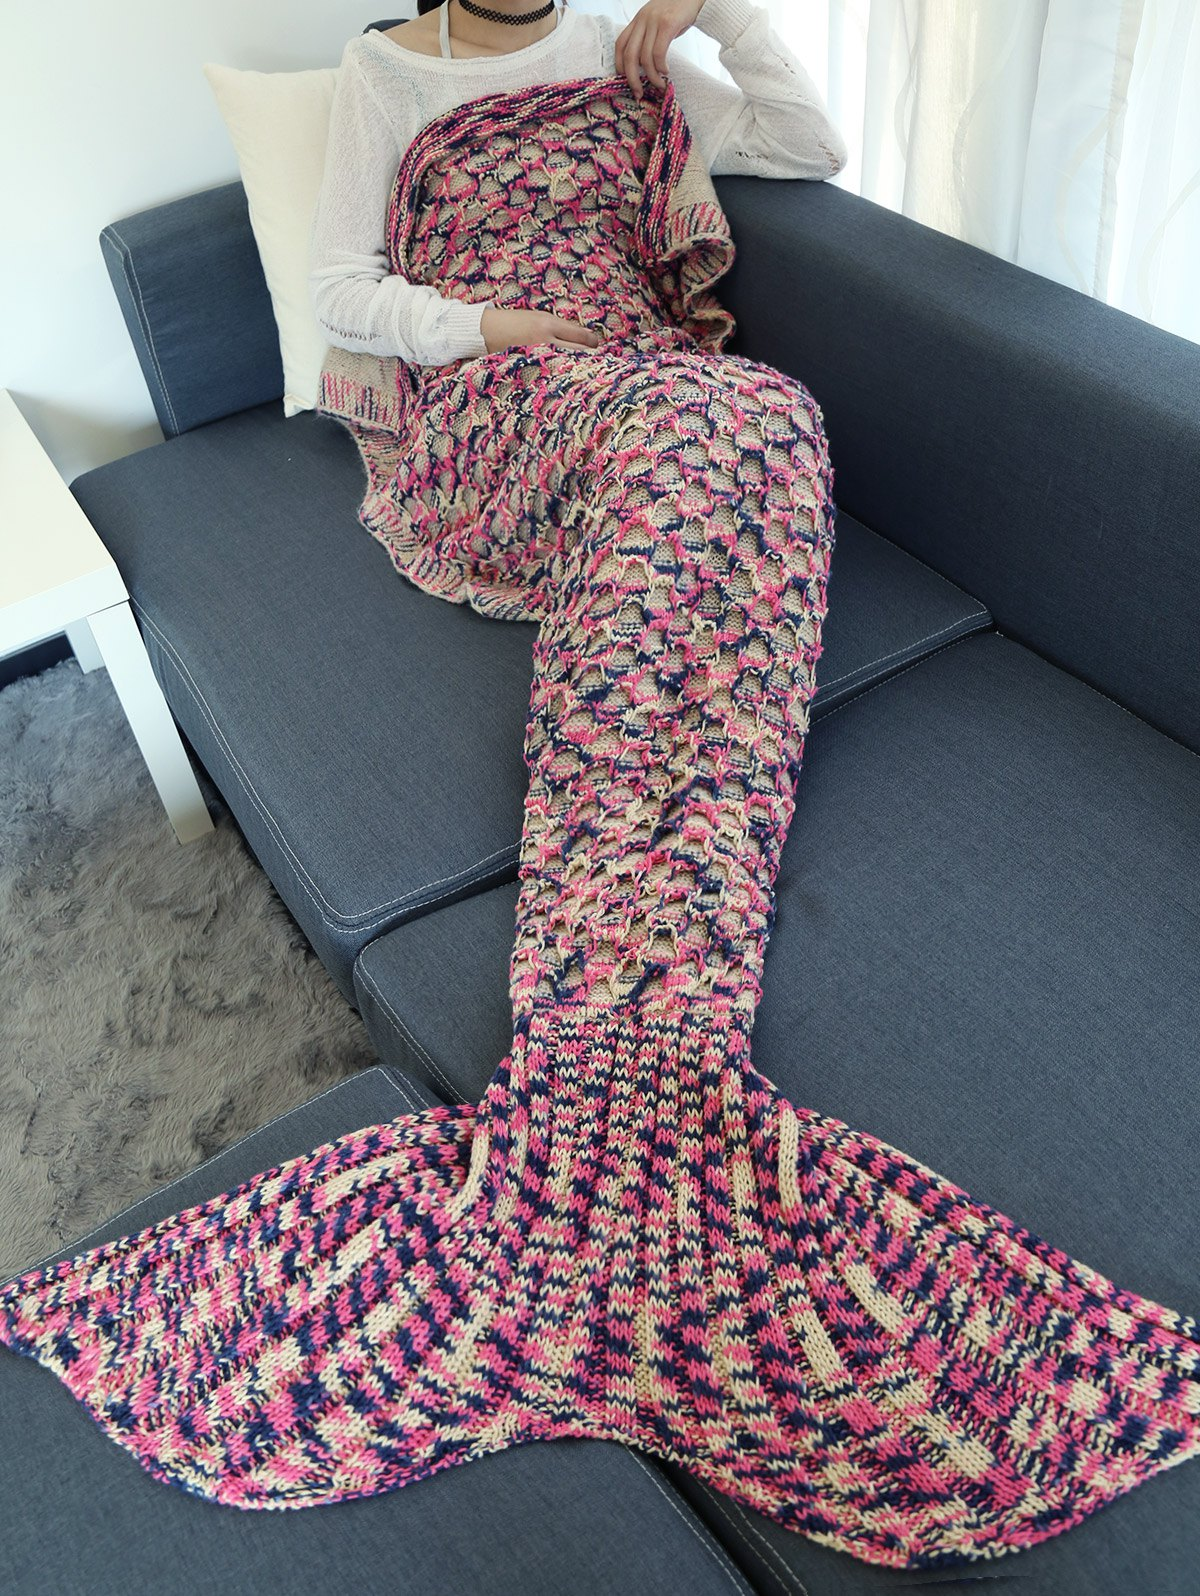 Fancy Camouflage Pattern Crochet Knit Mermaid Blanket Throw